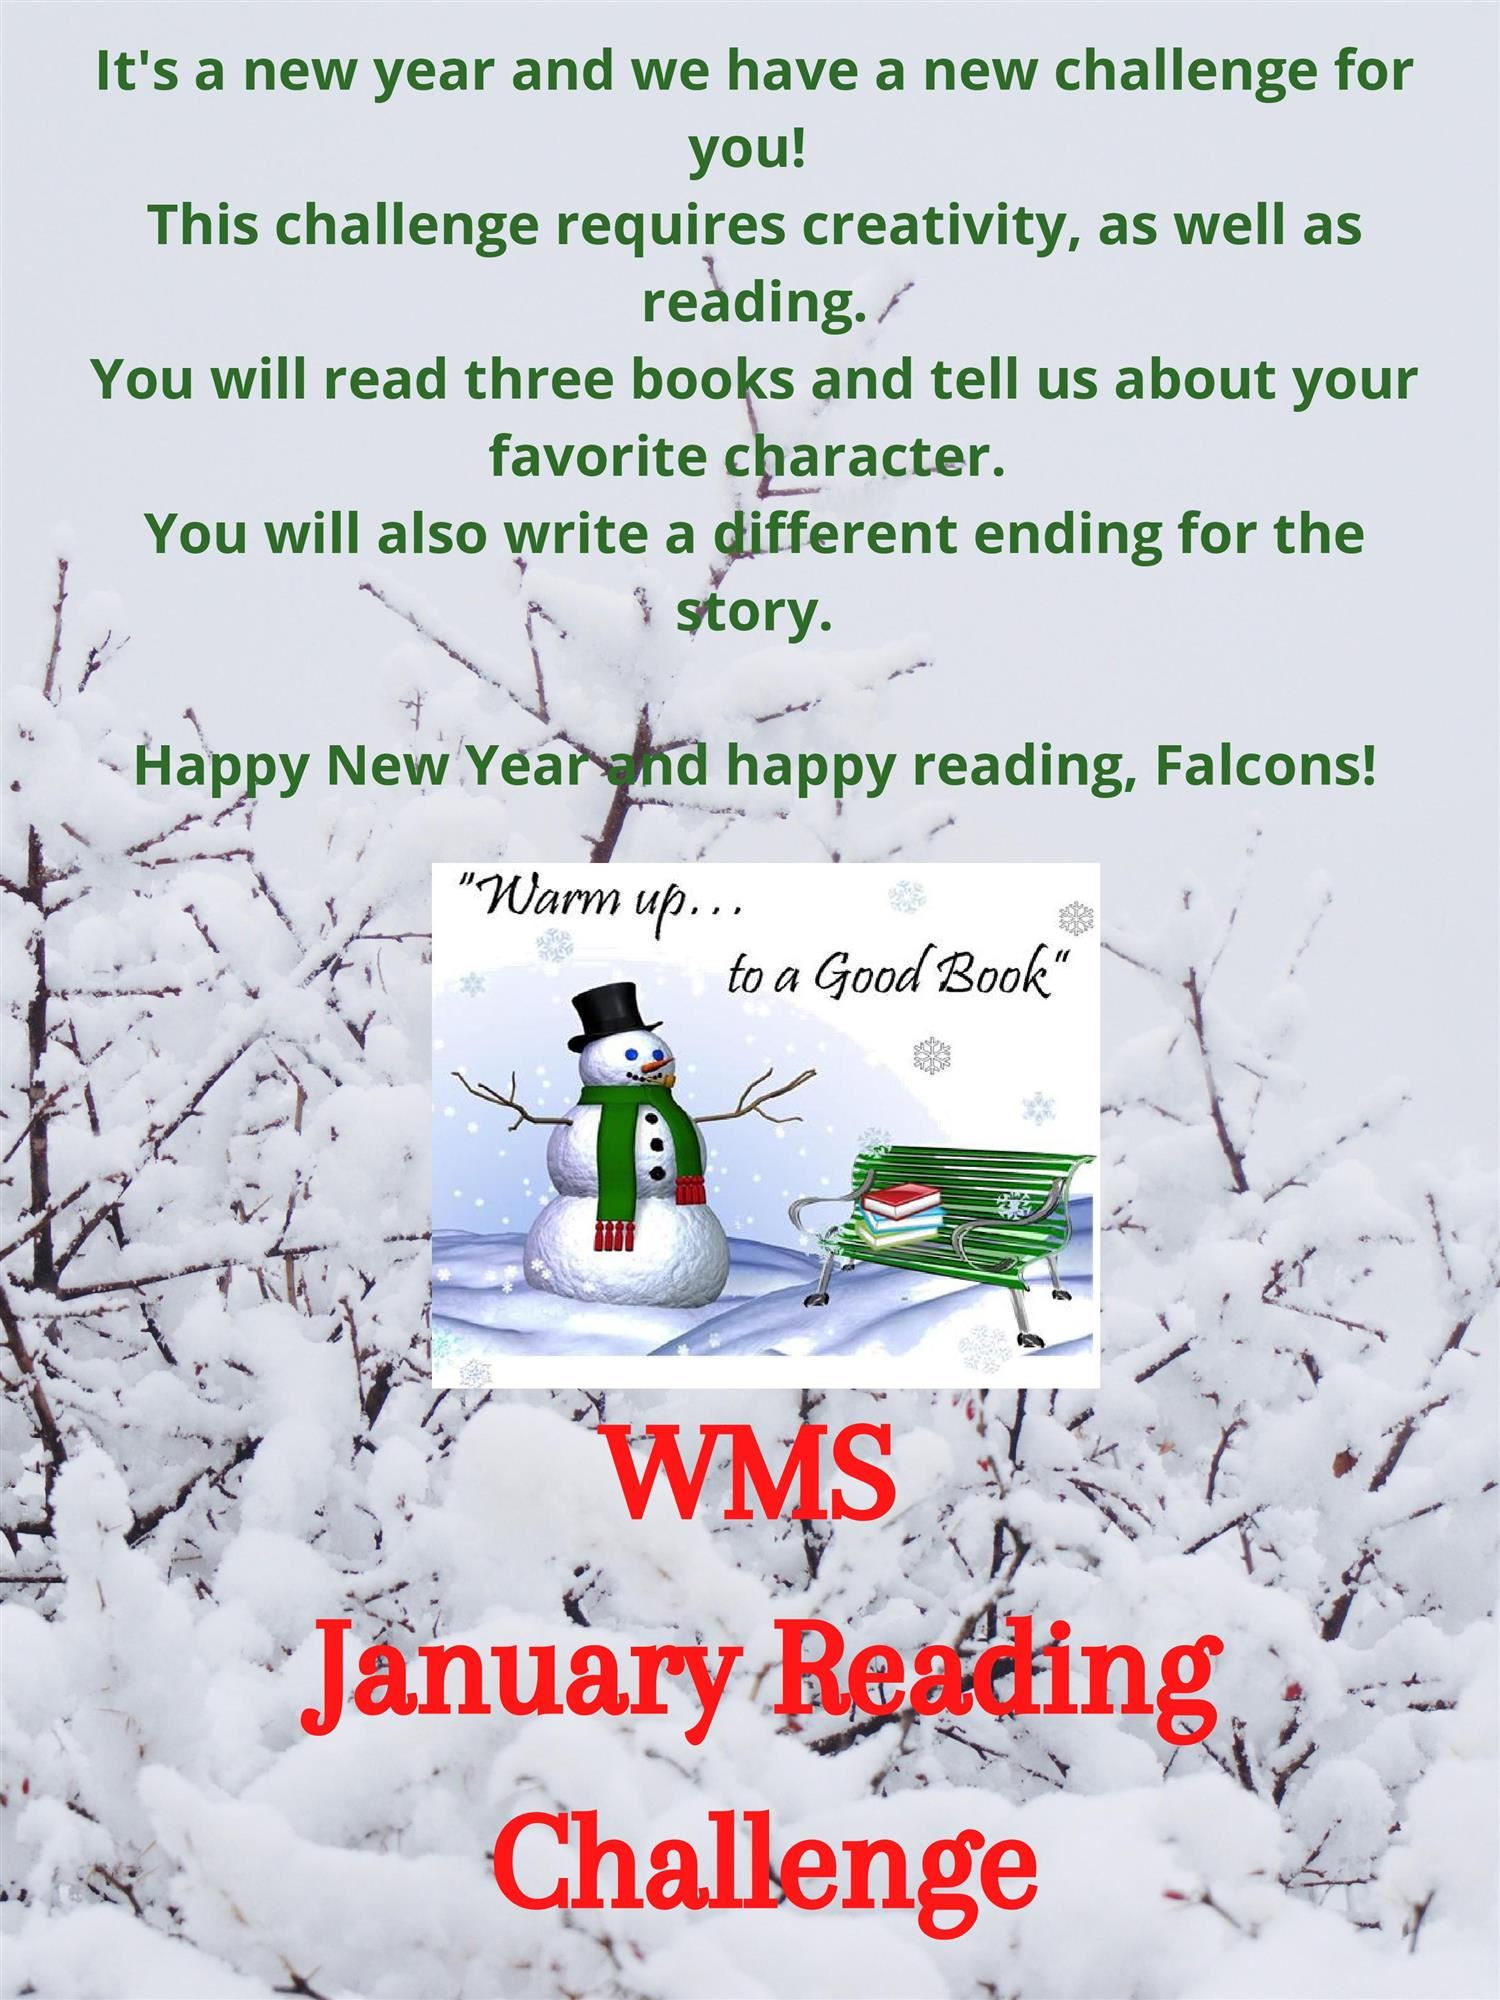 January Reading Challenge